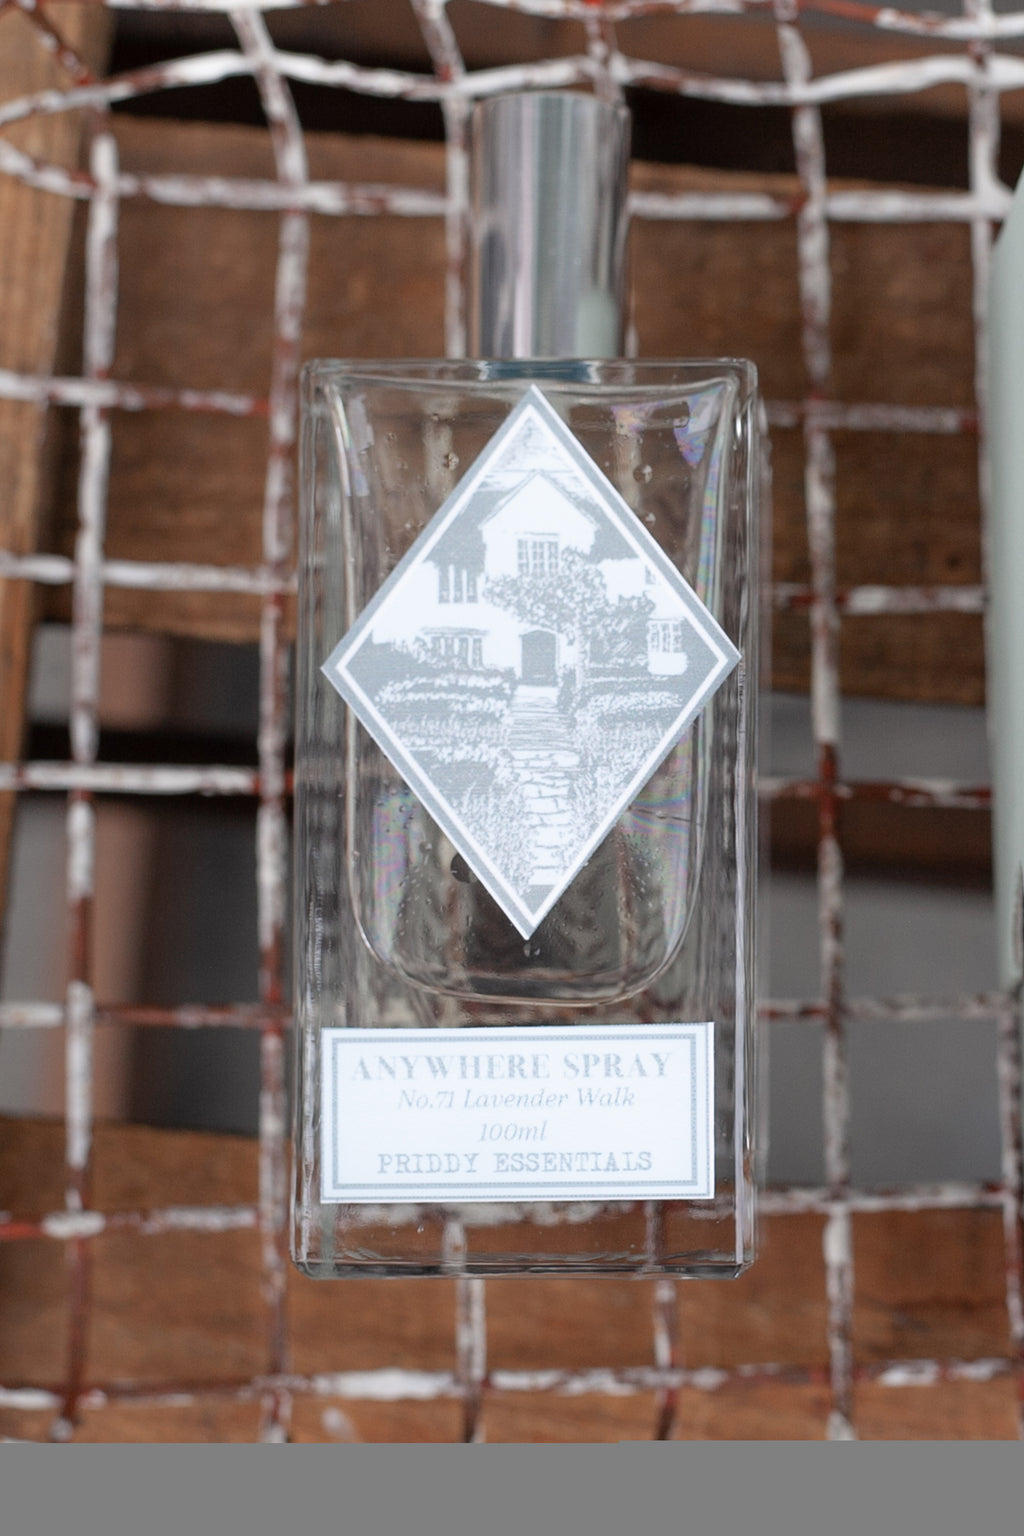 Priddy Essentials Lavender Walk Anywhere Spray - The Mercantile London